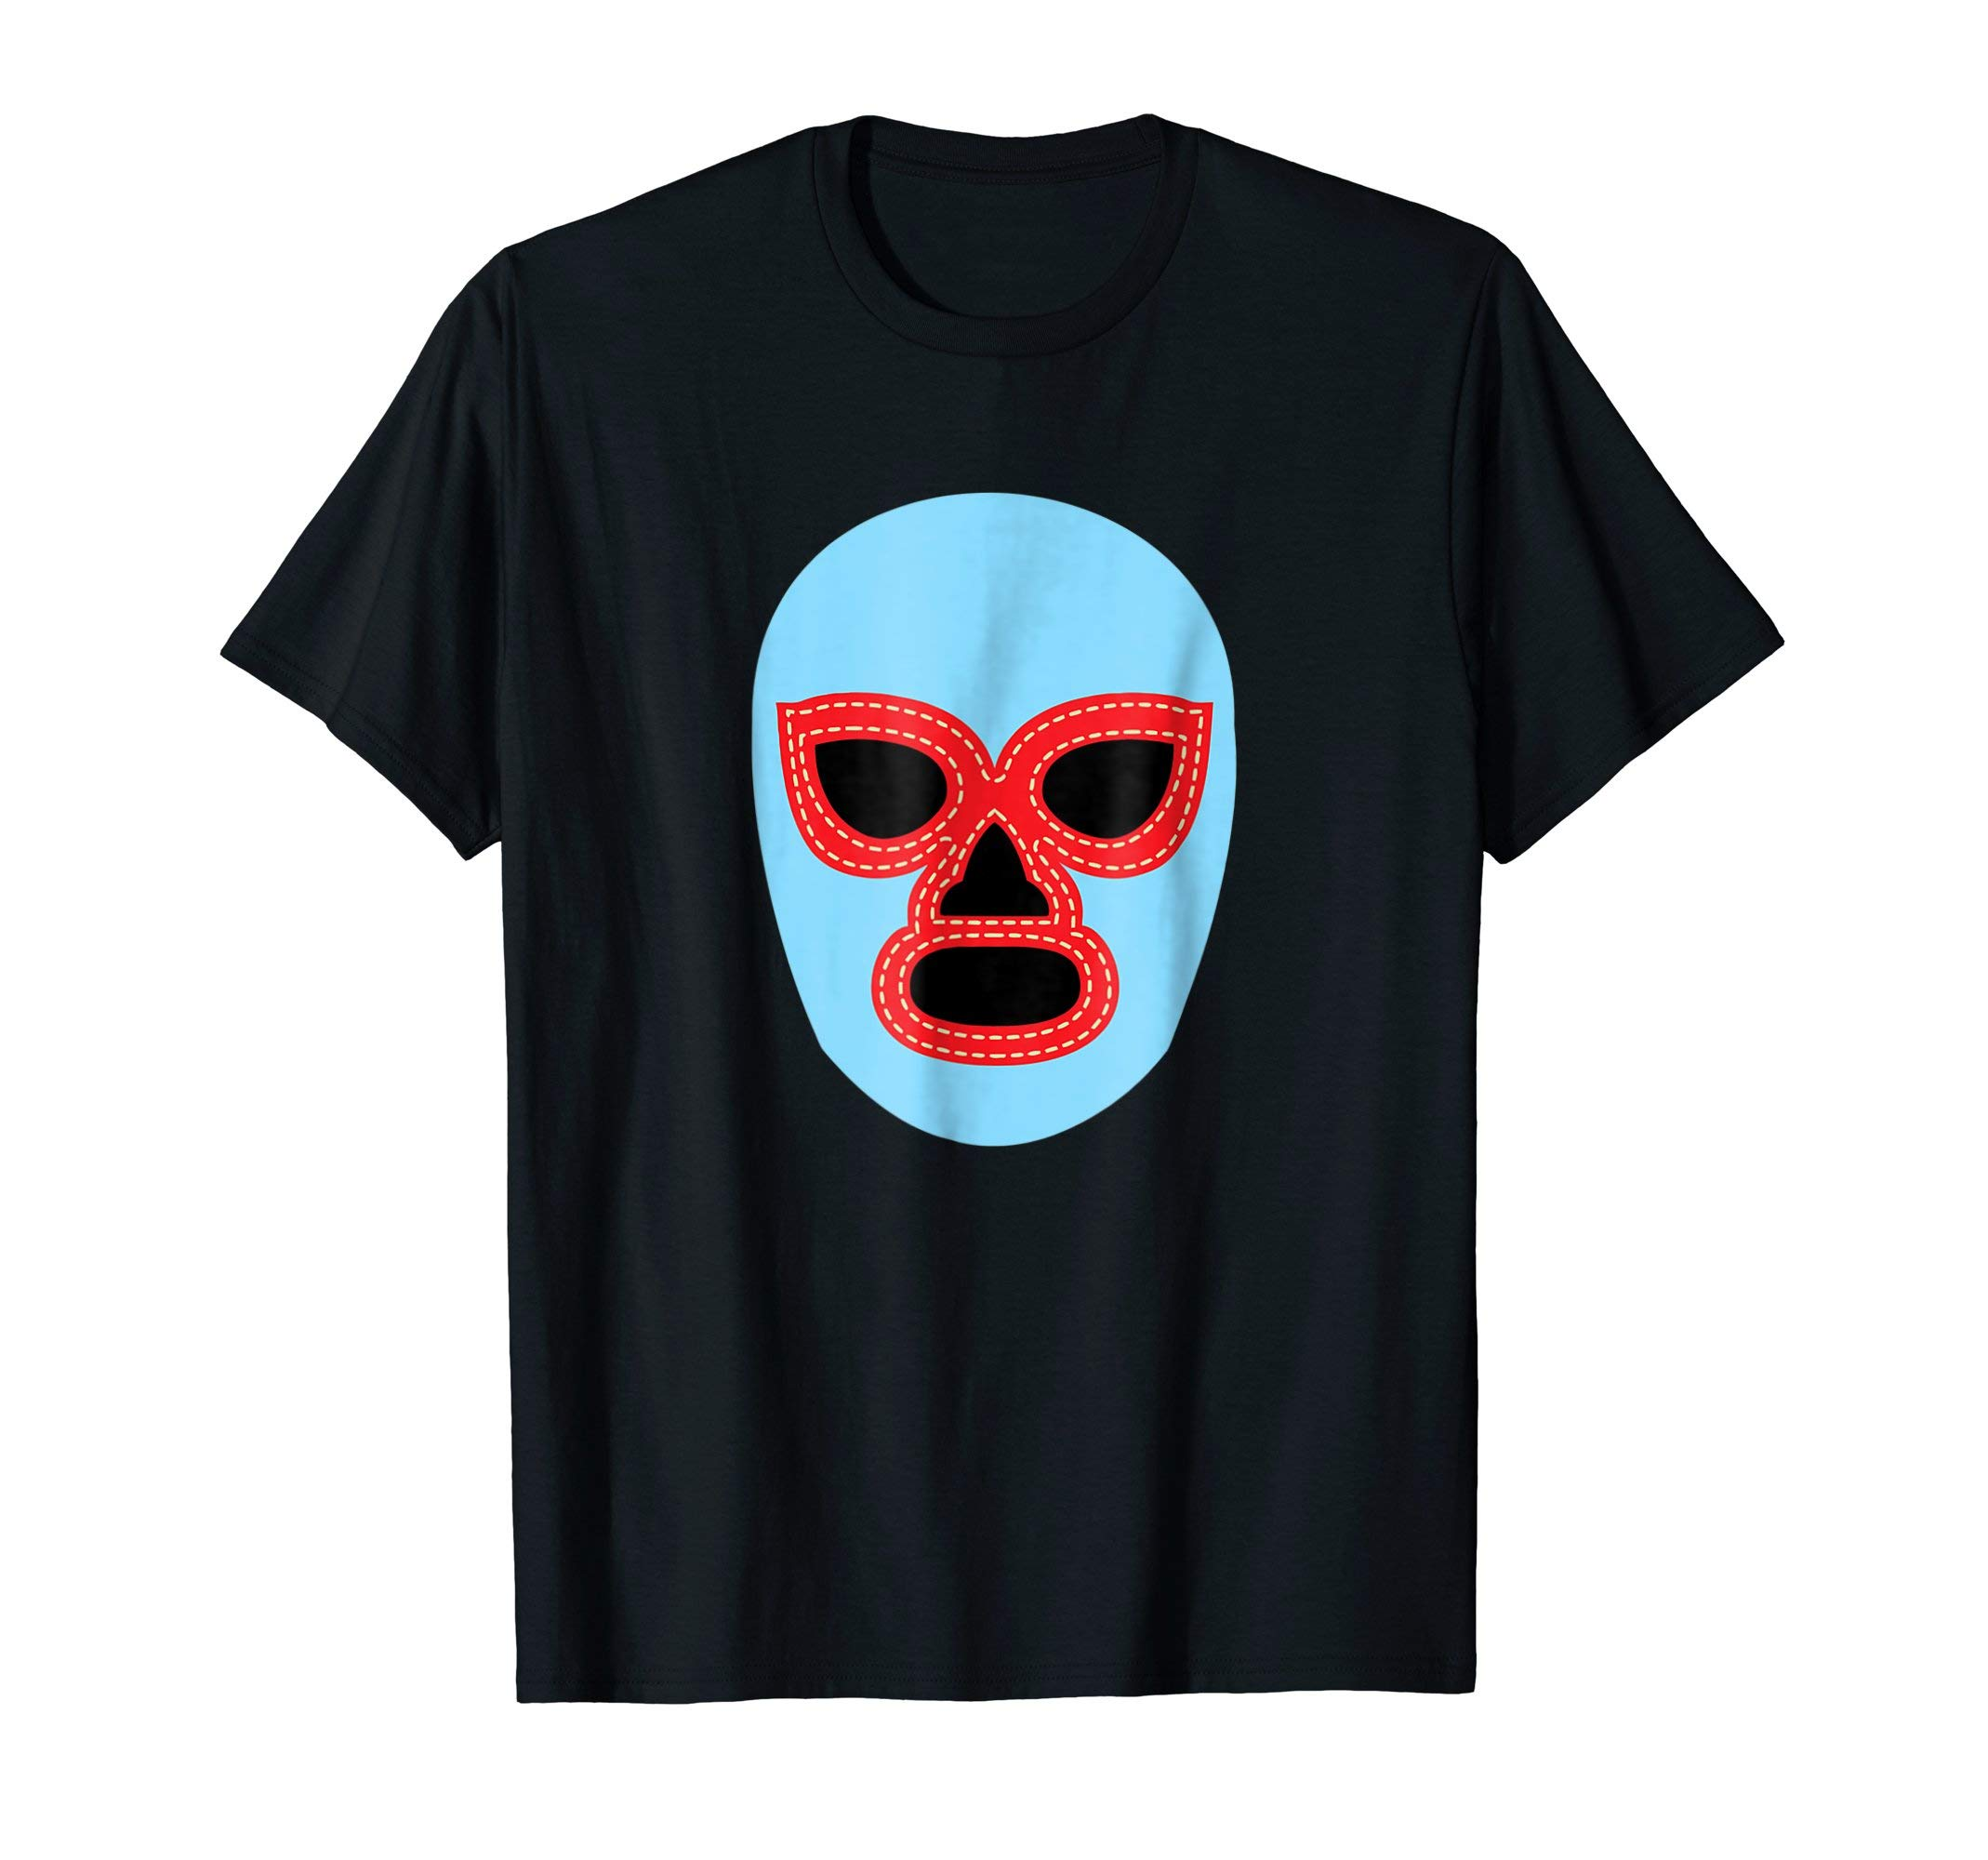 Luchador Wrestler Mask T Shirt Lucha Libre Wrestling Tee by Mexican Luchador Gifts Shirts